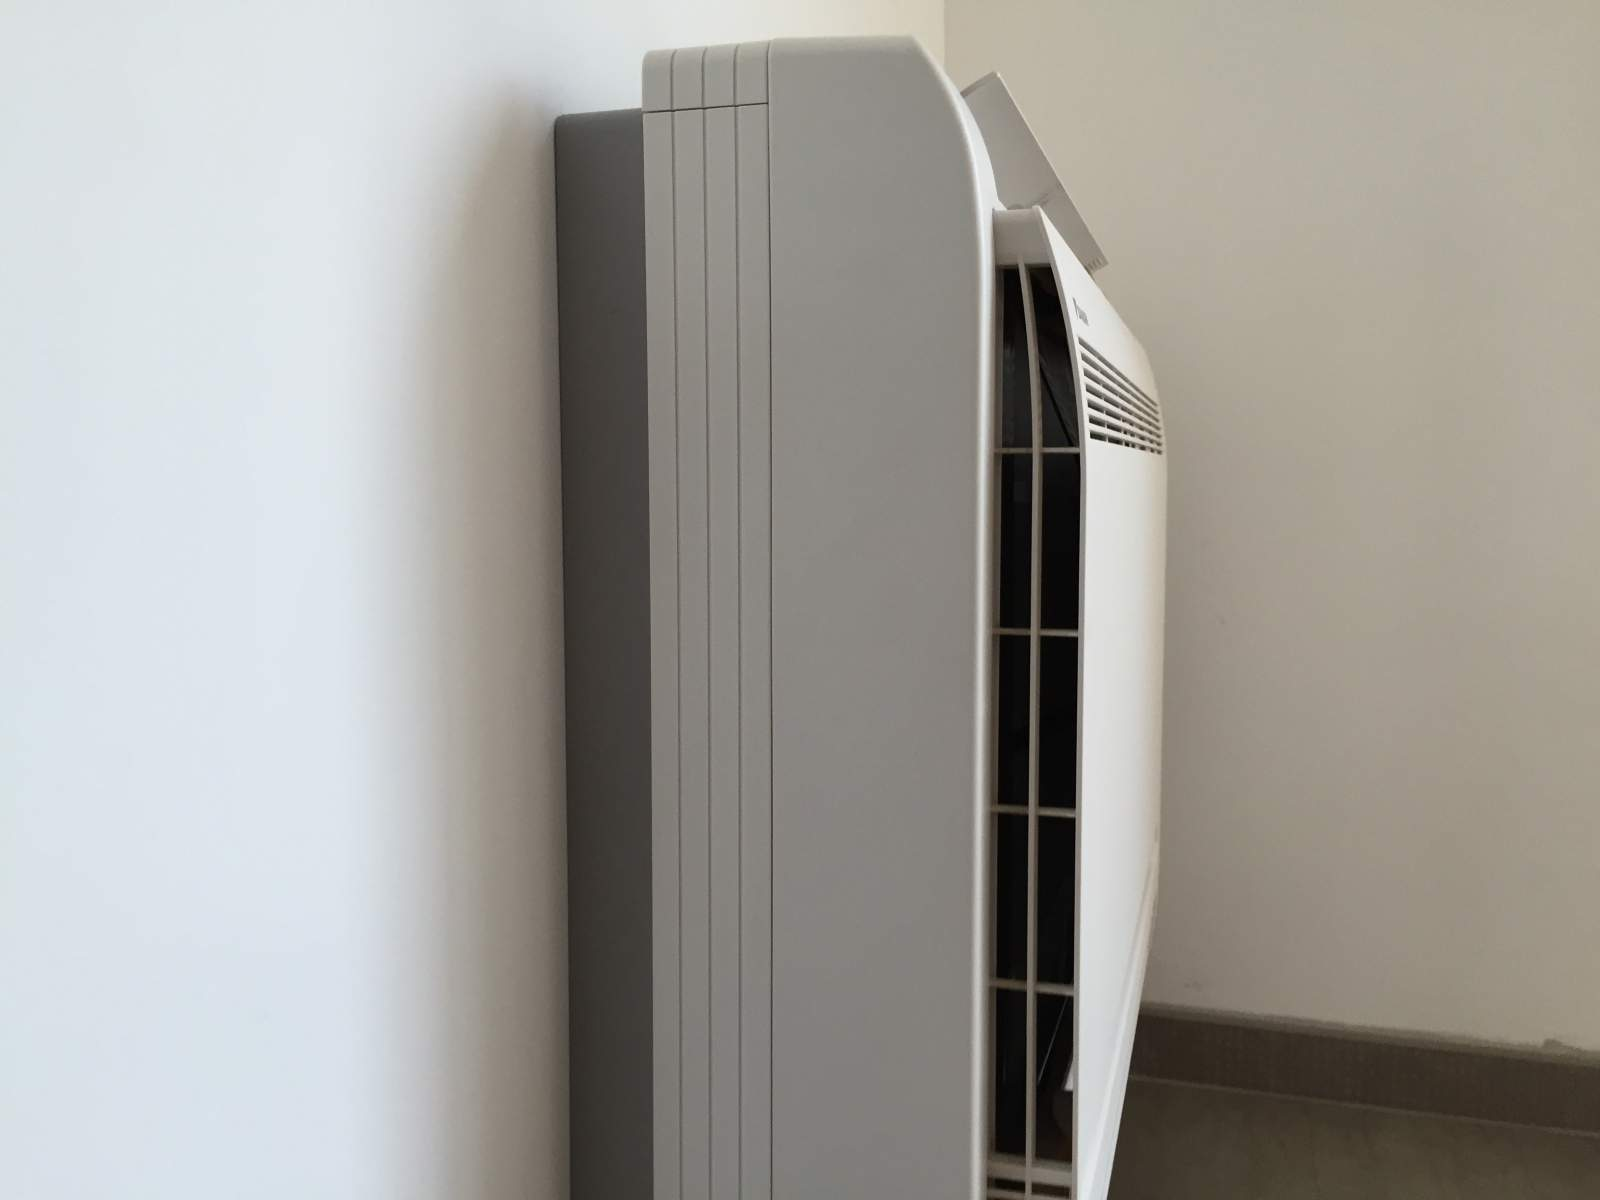 remplacement radiateur lectrique par console double flux fvxs 35 f daikin marseille montolivet. Black Bedroom Furniture Sets. Home Design Ideas